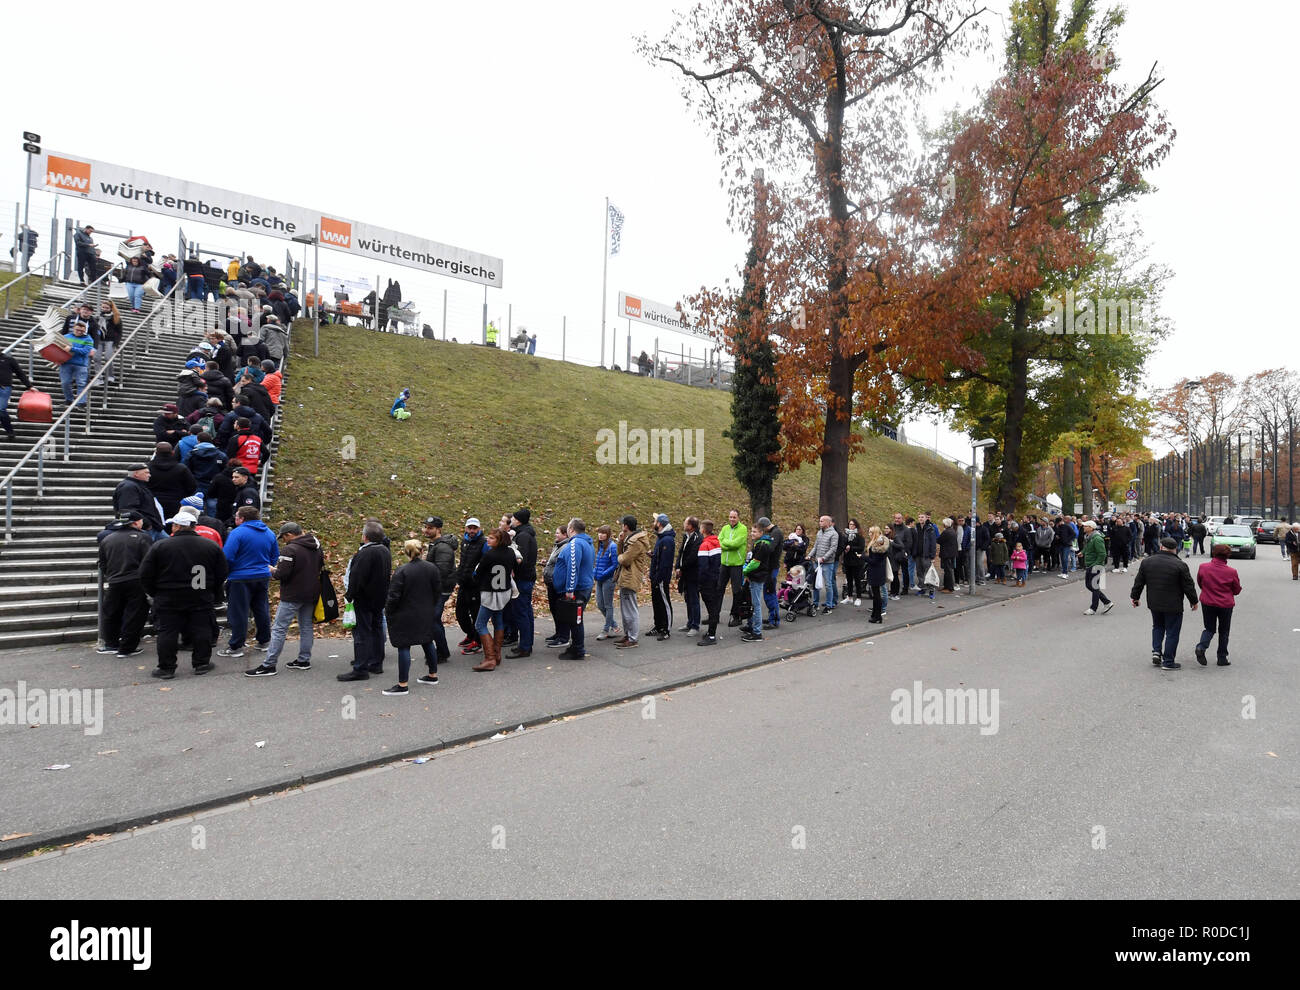 Karlsruhe, Germany. 04th Nov, 2018. Fans of the third-league football team Karlsruher SC are queuing in front of the Wildparkstadion Karlsruhe to dismantle seat shells. Before the demolition work on blocks A1 to A4 begins in the stadium on 05.11.2018, KSC fans can secure up to ten seat shells for five euros each. According to the association, the proceeds from the fan campaign will be donated to the youngsters of Karlsruher SC. Credit: Uli Deck/dpa/Alamy Live News - Stock Image